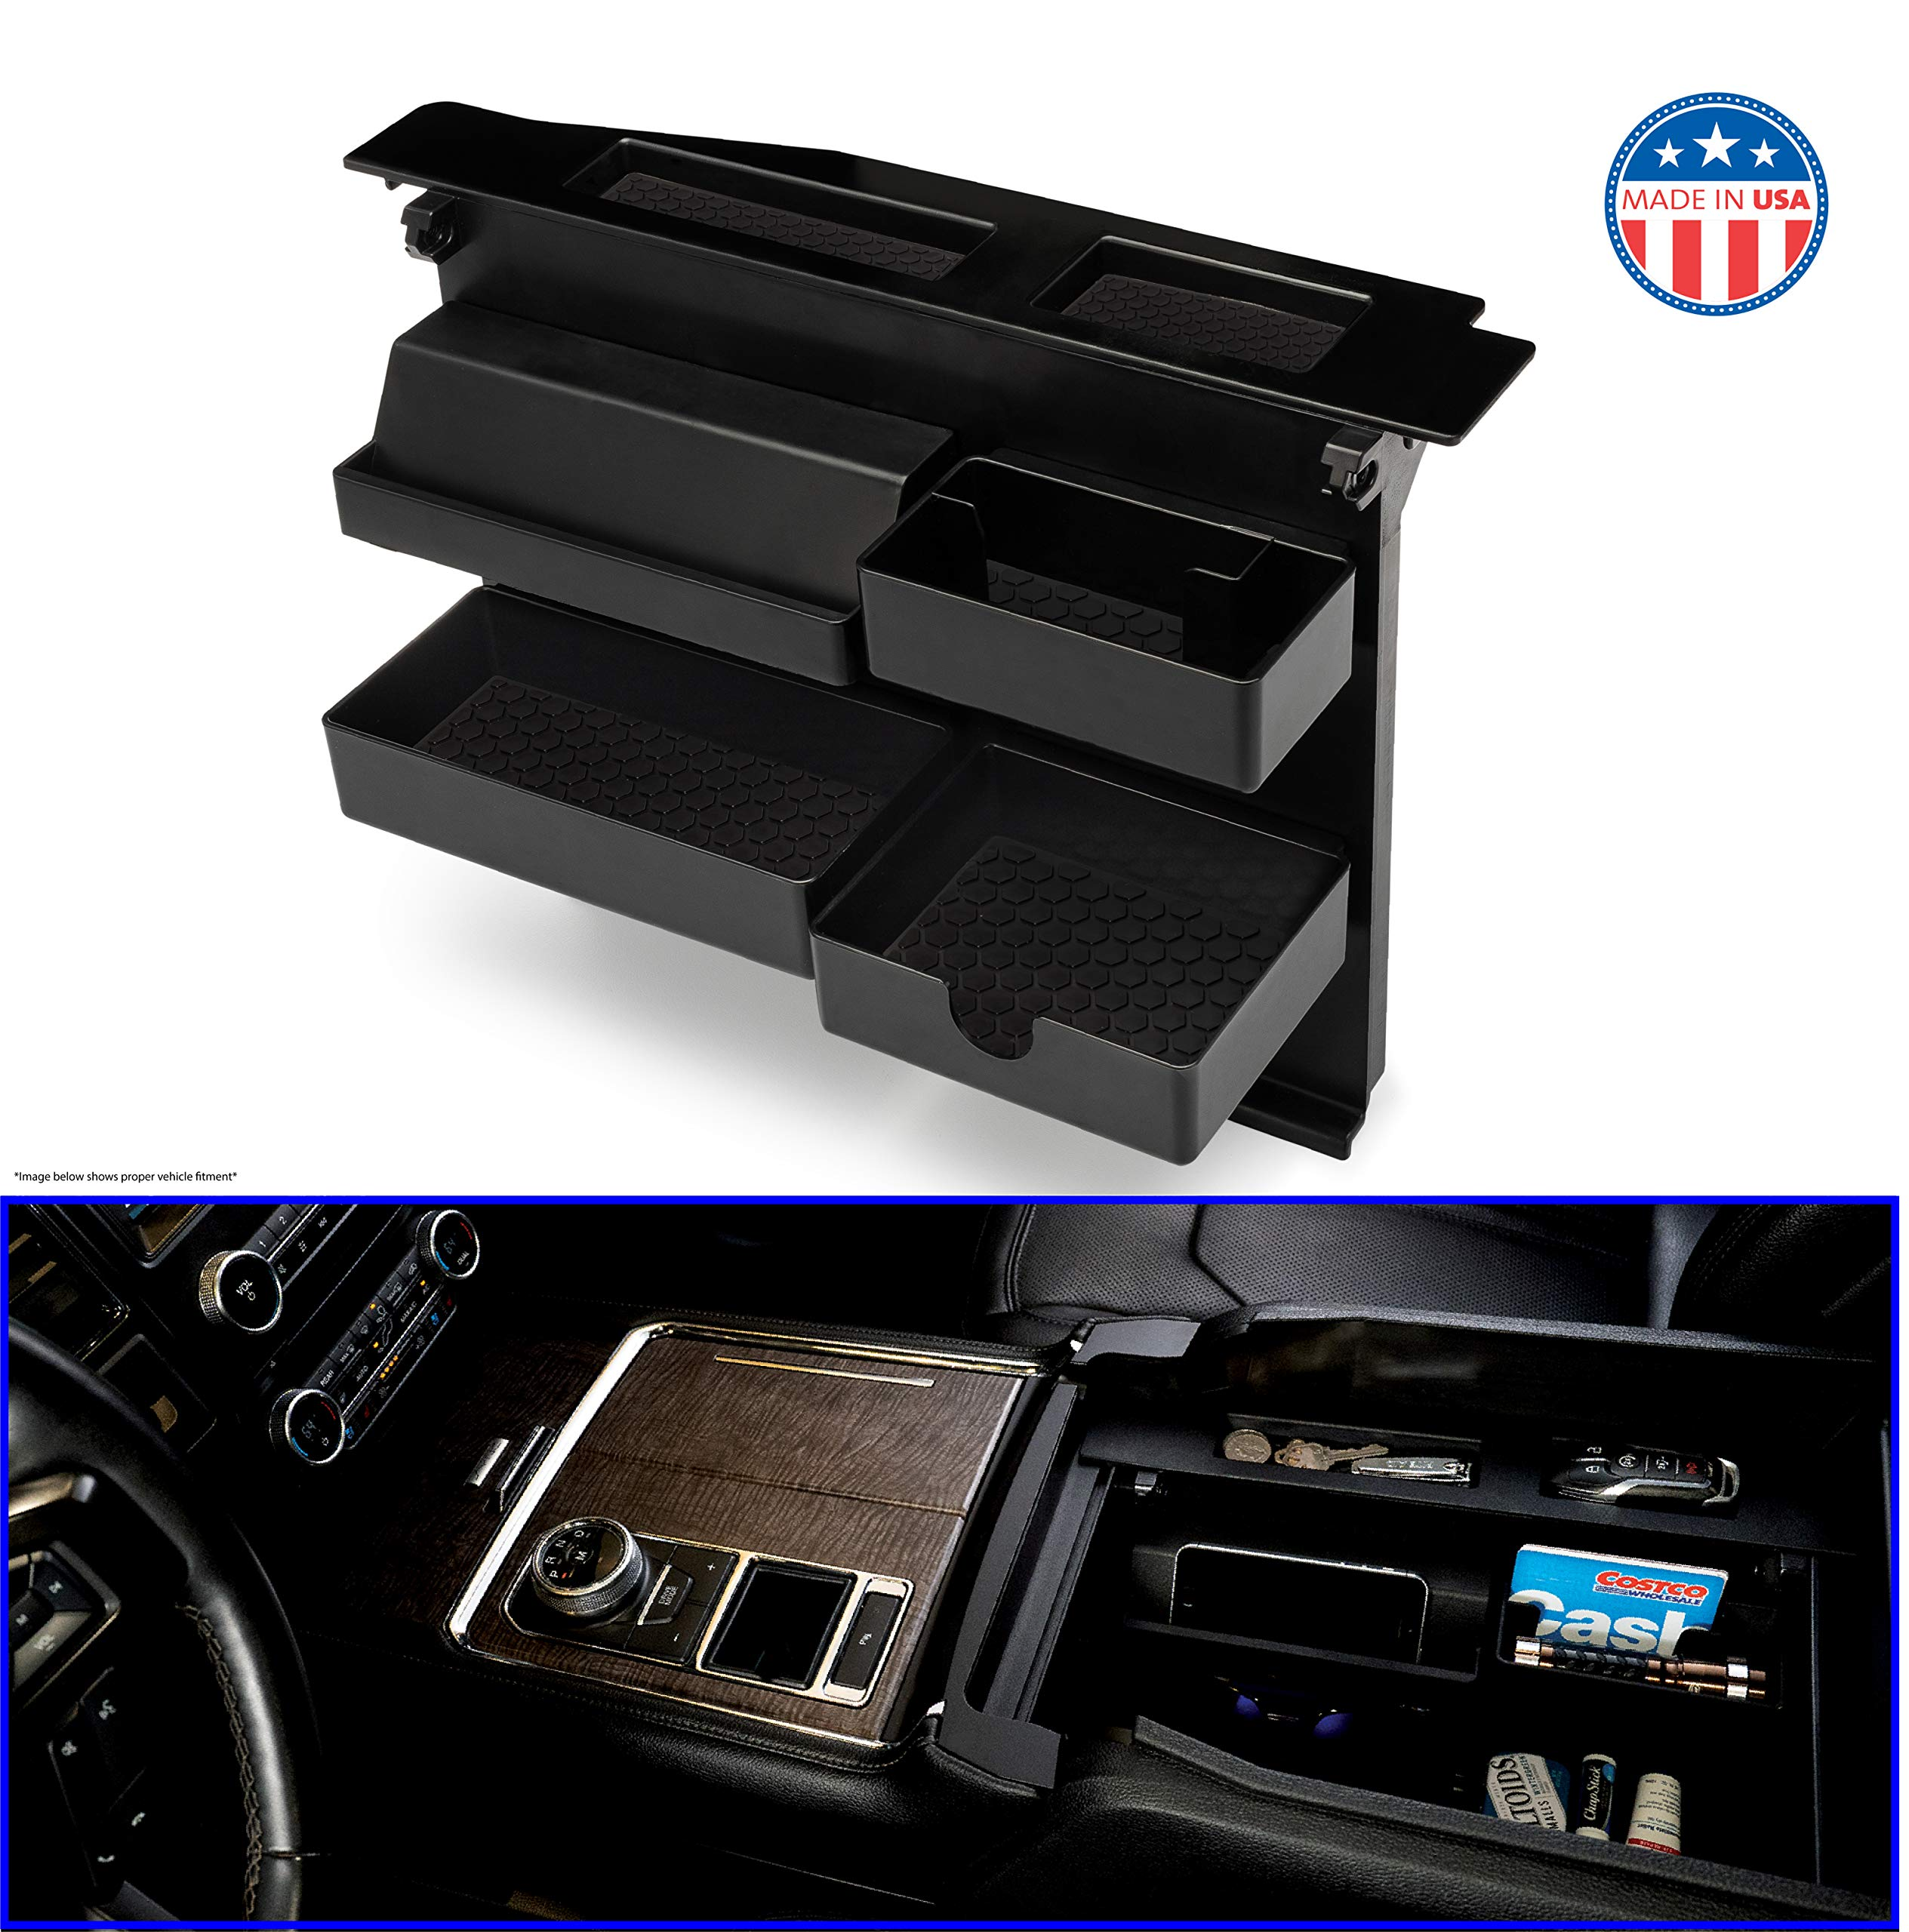 15-19 fits F150 Underseat Storage Box System Organizer Contaier Crew Cab Only